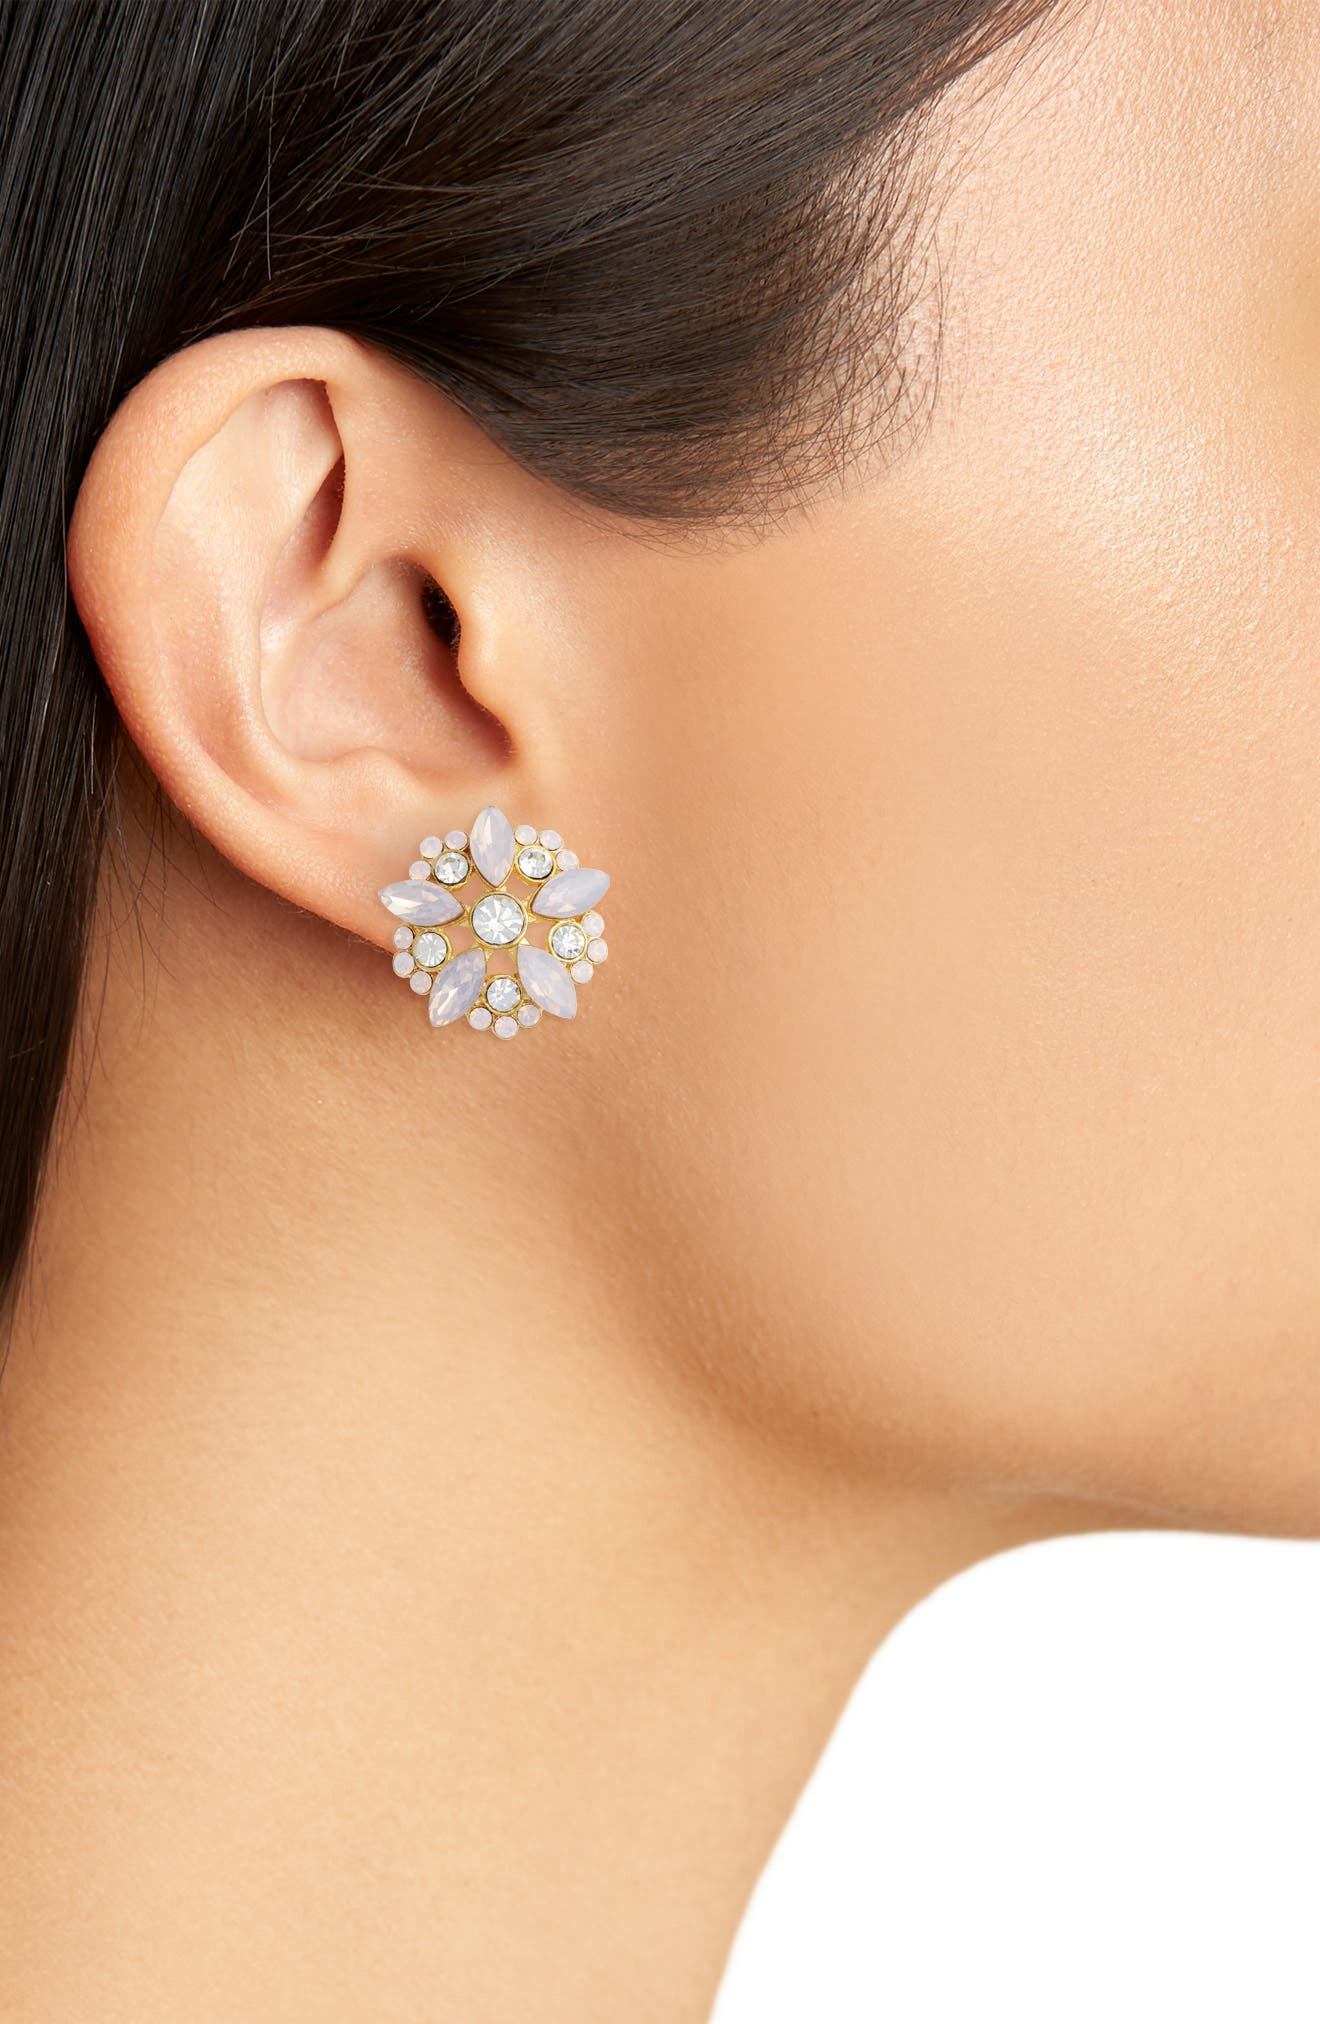 Floral Stud Earrings,                             Alternate thumbnail 2, color,                             GOLD/ PINK OPAL/ WHITE CRYSTAL